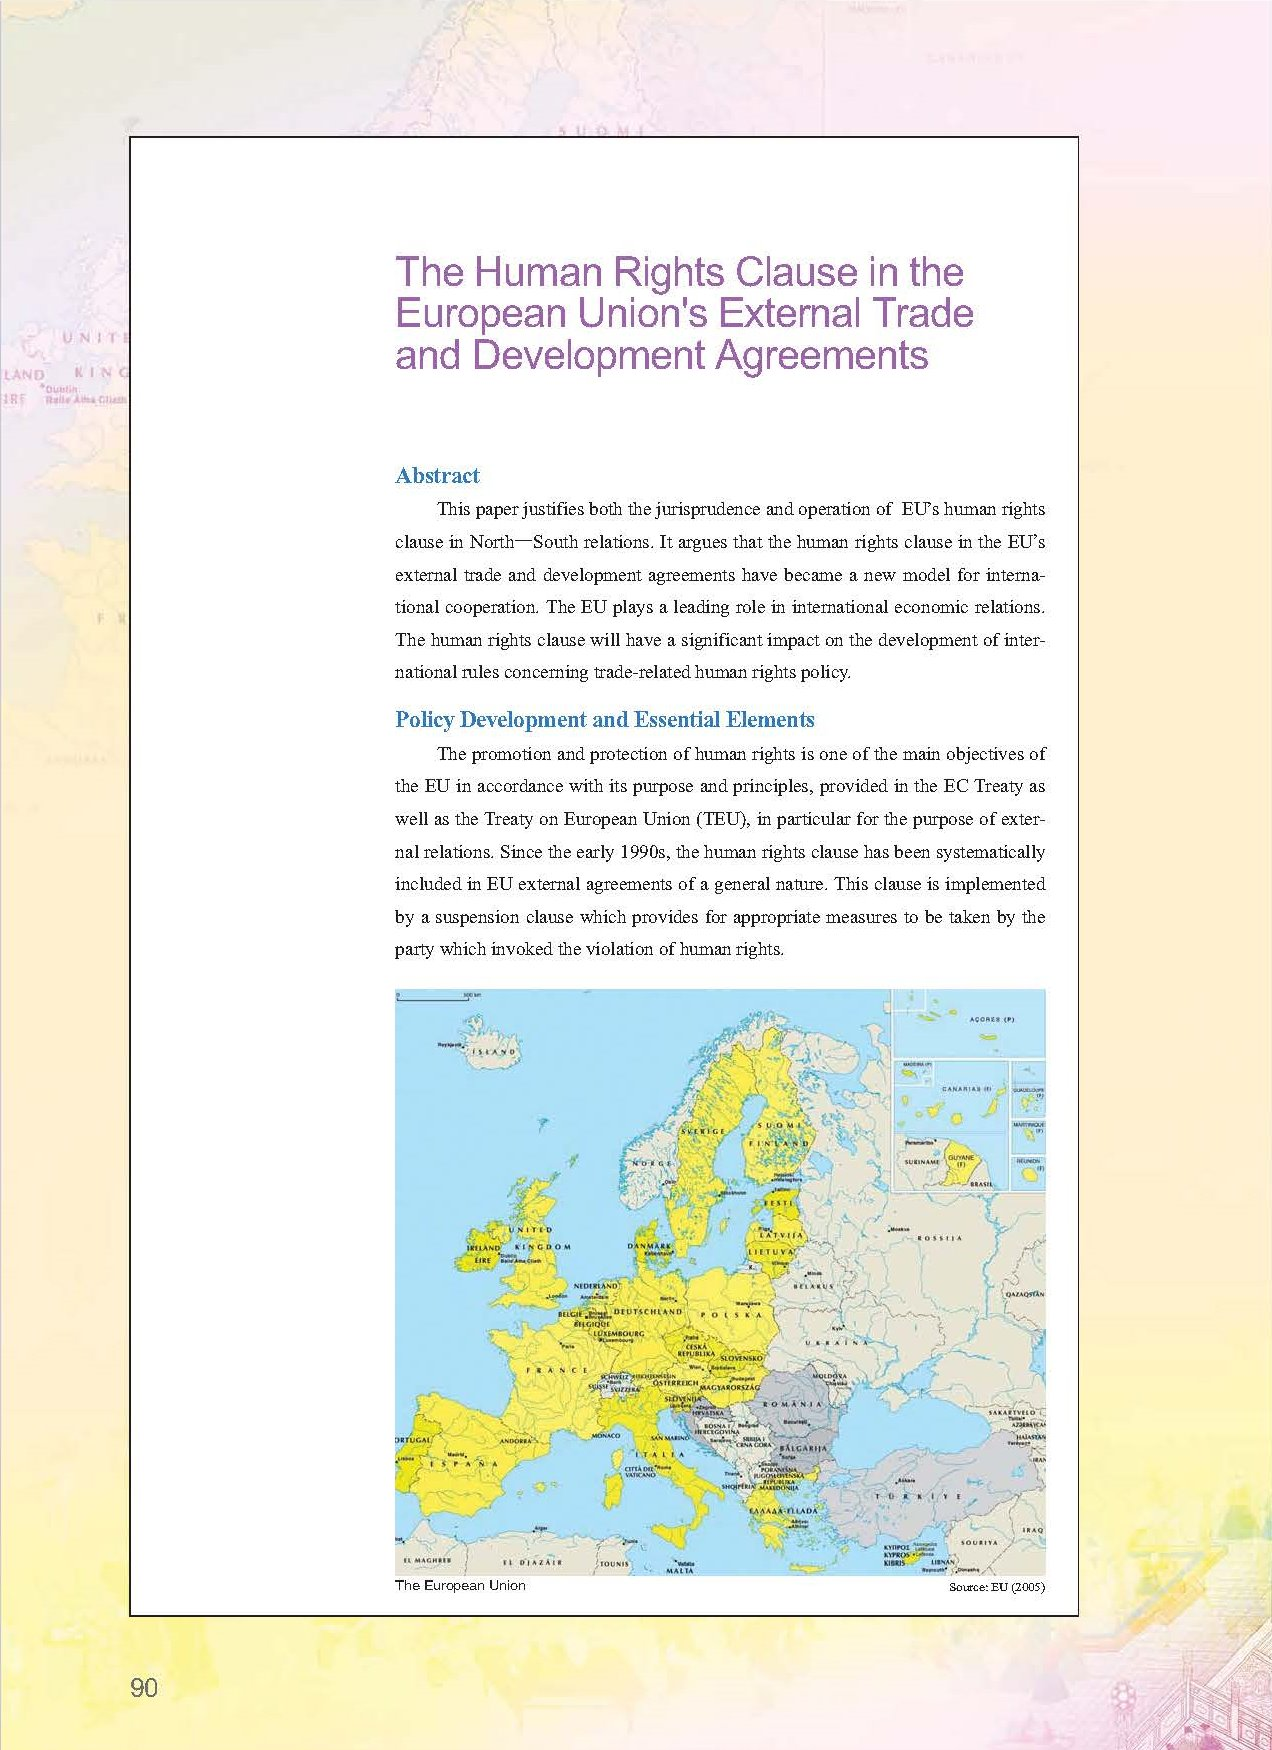 The Human Rights Clause in the European Union's External Trade and Development Agreements